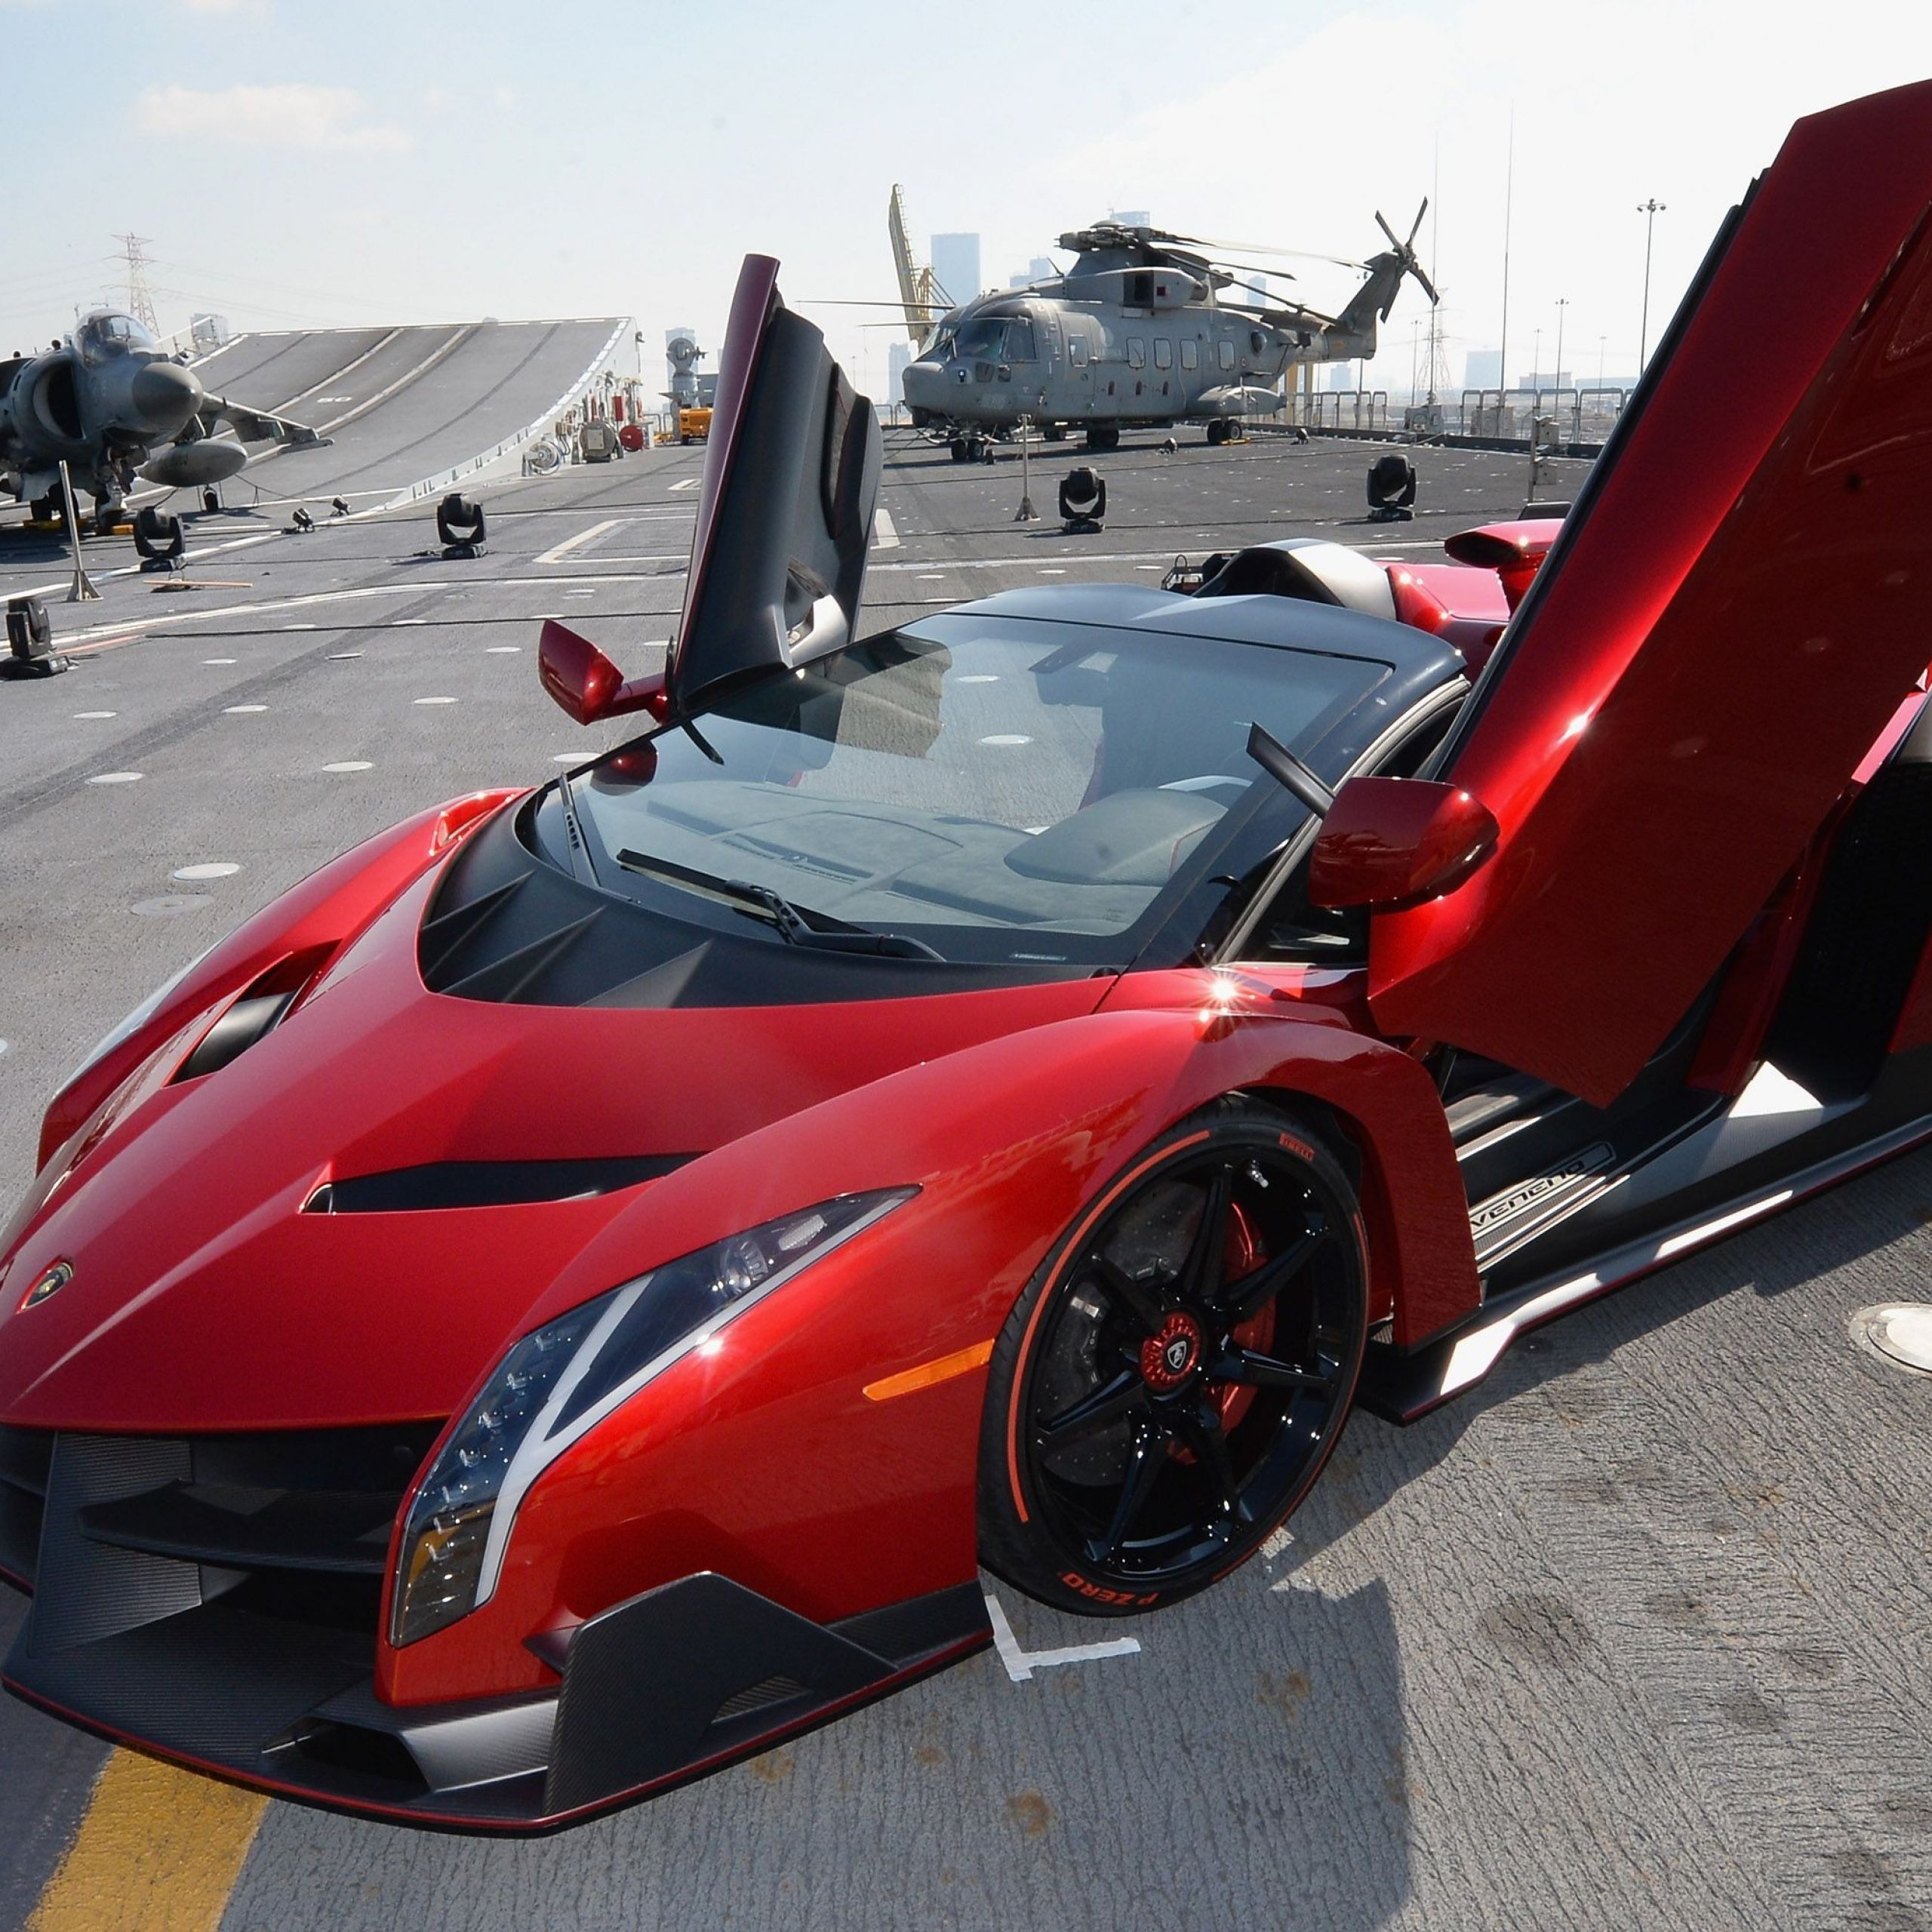 1 000 Dollar Cars for Sale Near Me Fresh the World S Most Expensive Cars